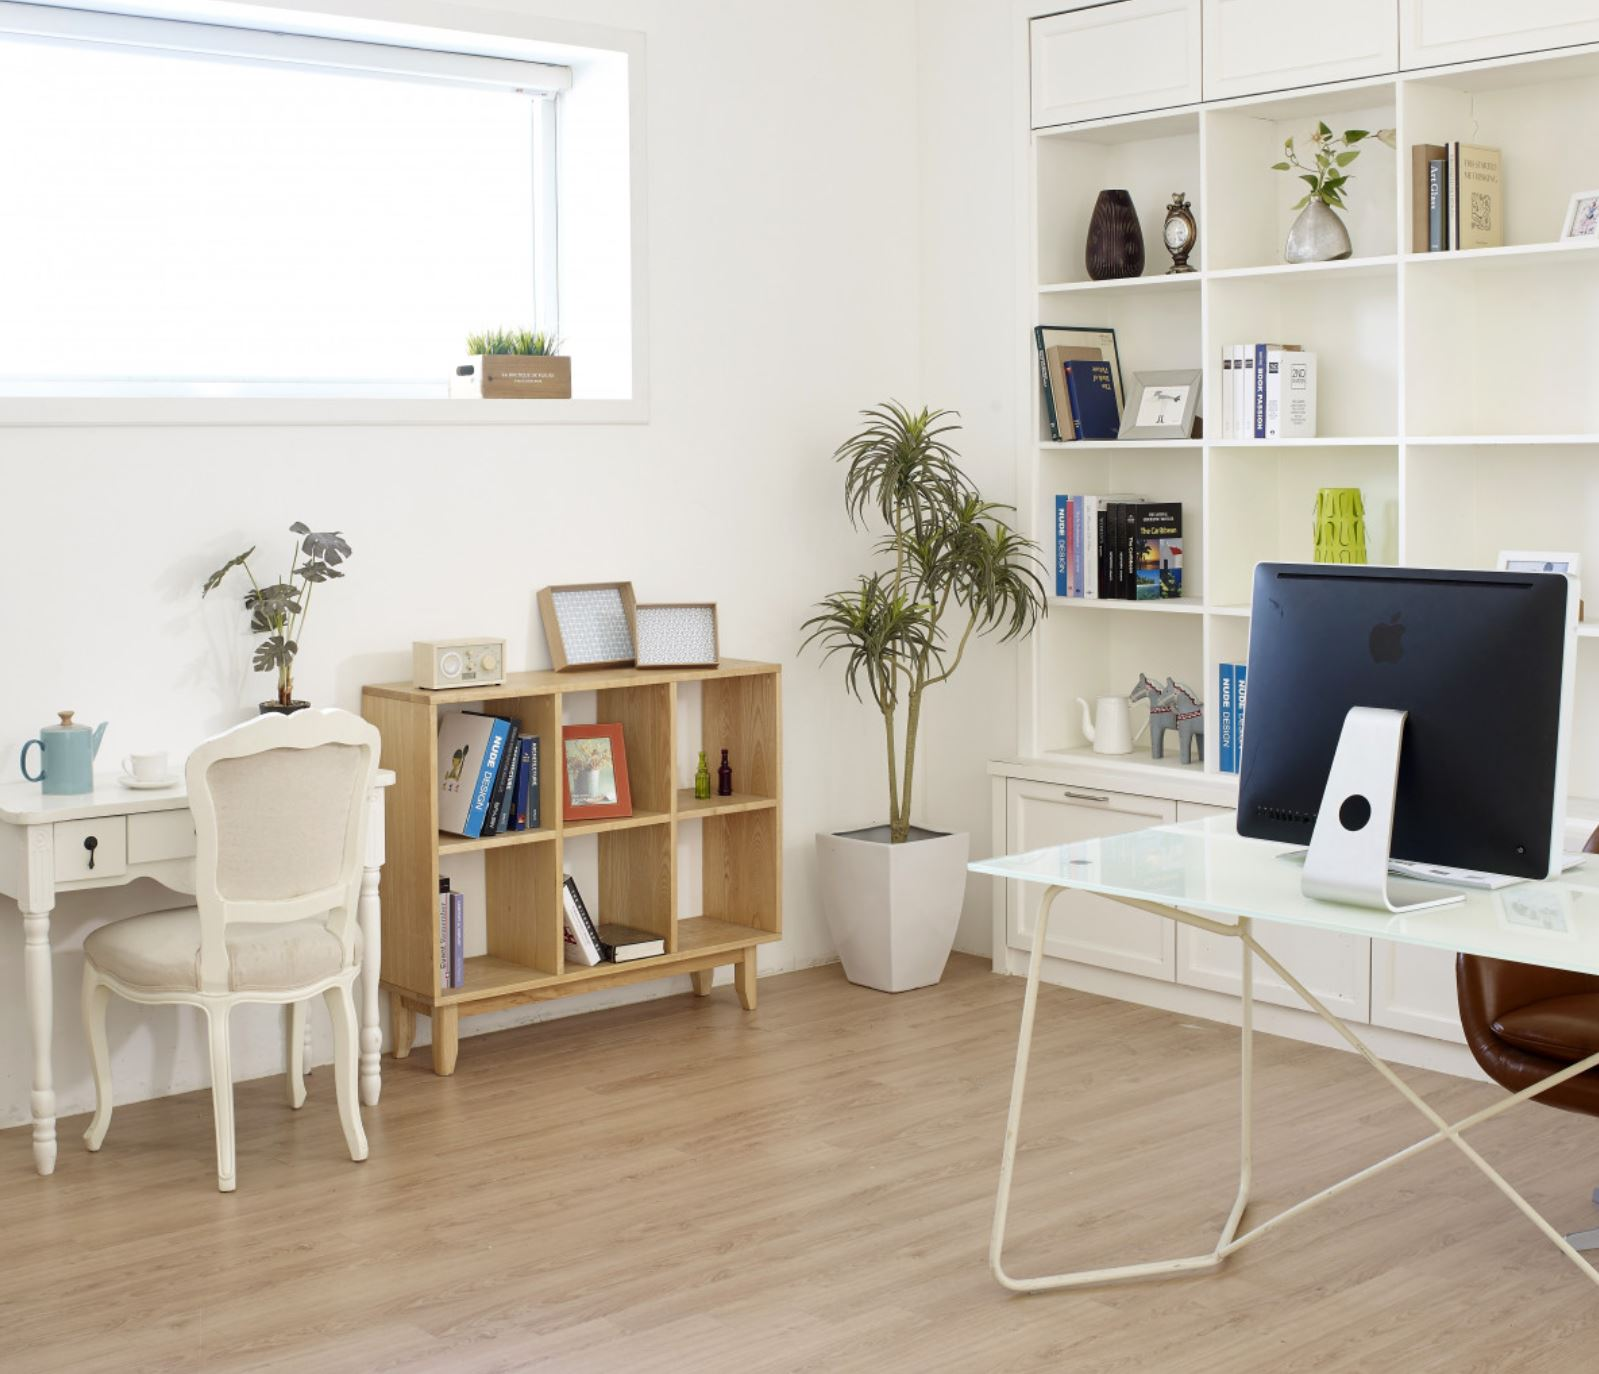 Realtor Magazine 2020 08 28 Five Design Trends emerging after the COVID-19 Coronavirus pandemic Hoey Team eXp Realty Growth of the Home office